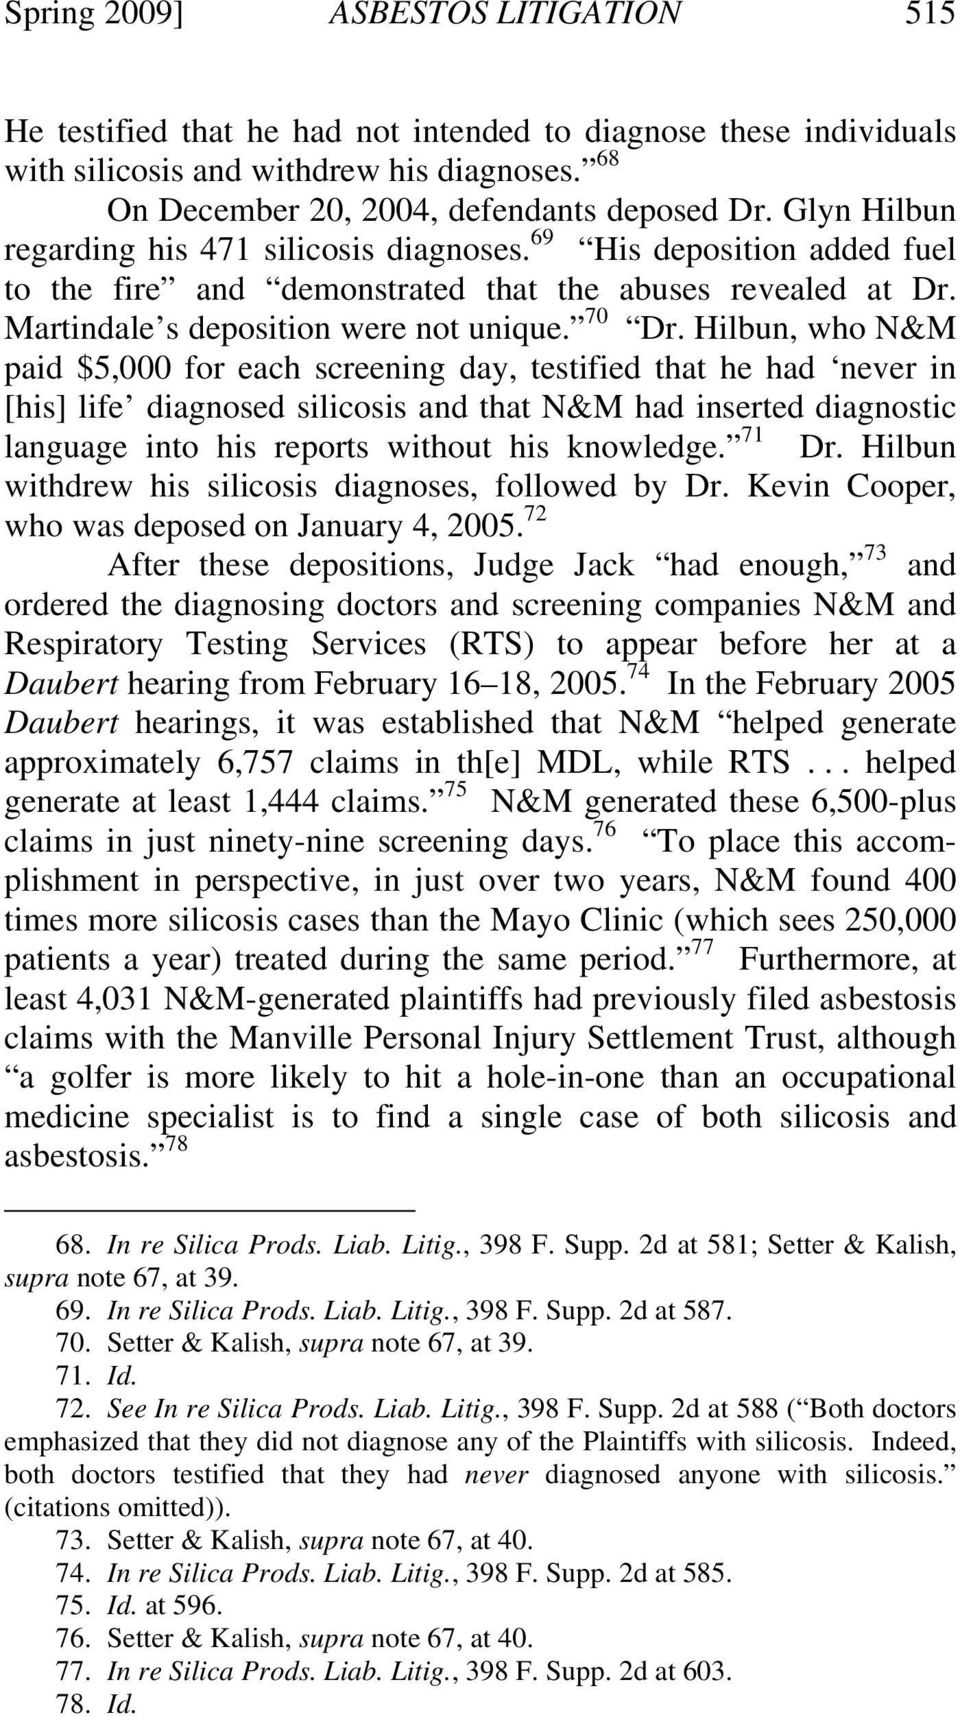 Hilbun, who N&M paid $5,000 for each screening day, testified that he had never in [his] life diagnosed silicosis and that N&M had inserted diagnostic language into his reports without his knowledge.